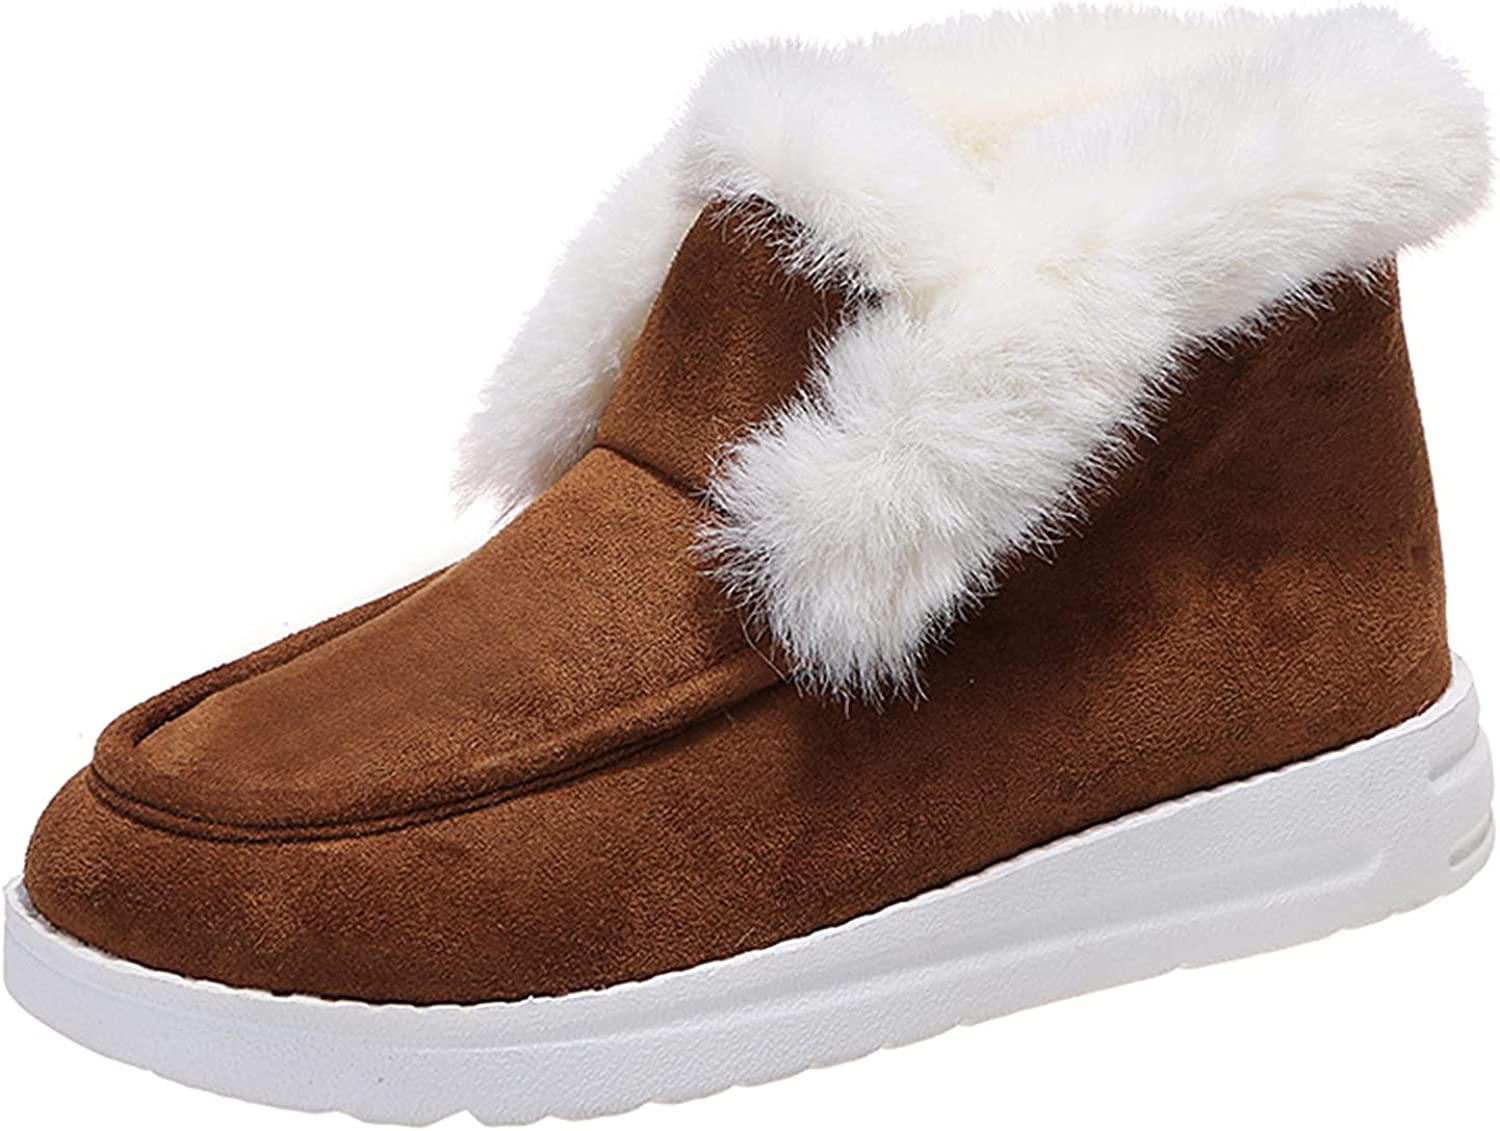 Flat Boots Cute Warm Winter Durable Shoes Casual Fashion Fur Lining Ankle Snow Boots Loafer Flats Platform Thick Plush Shoes for Women